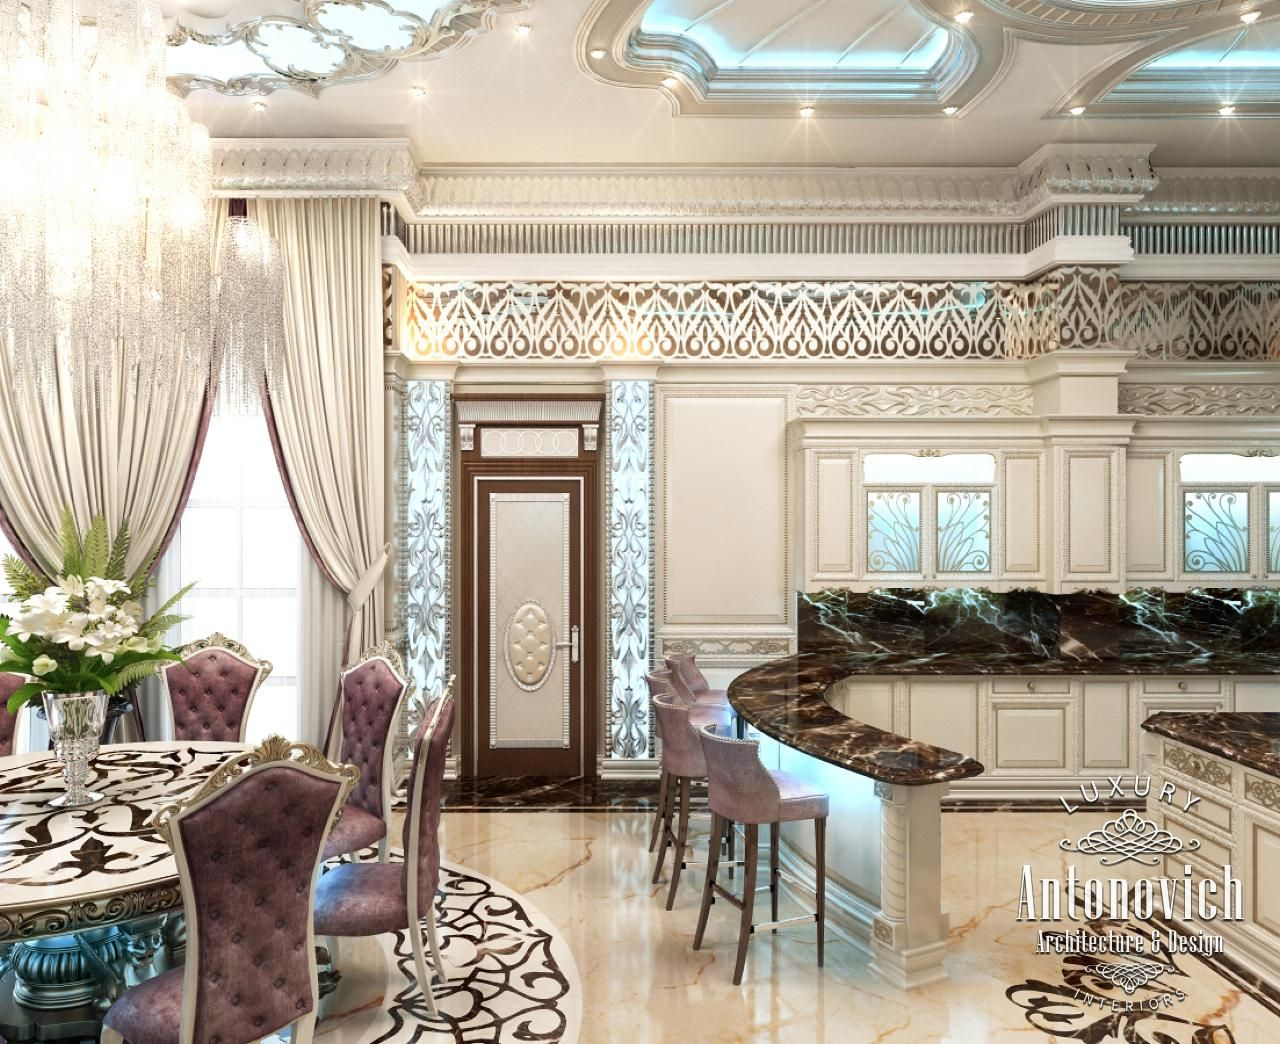 Kitchen design in dubai luxury kitchen abu dhabi photo 4 for Kitchen design dubai